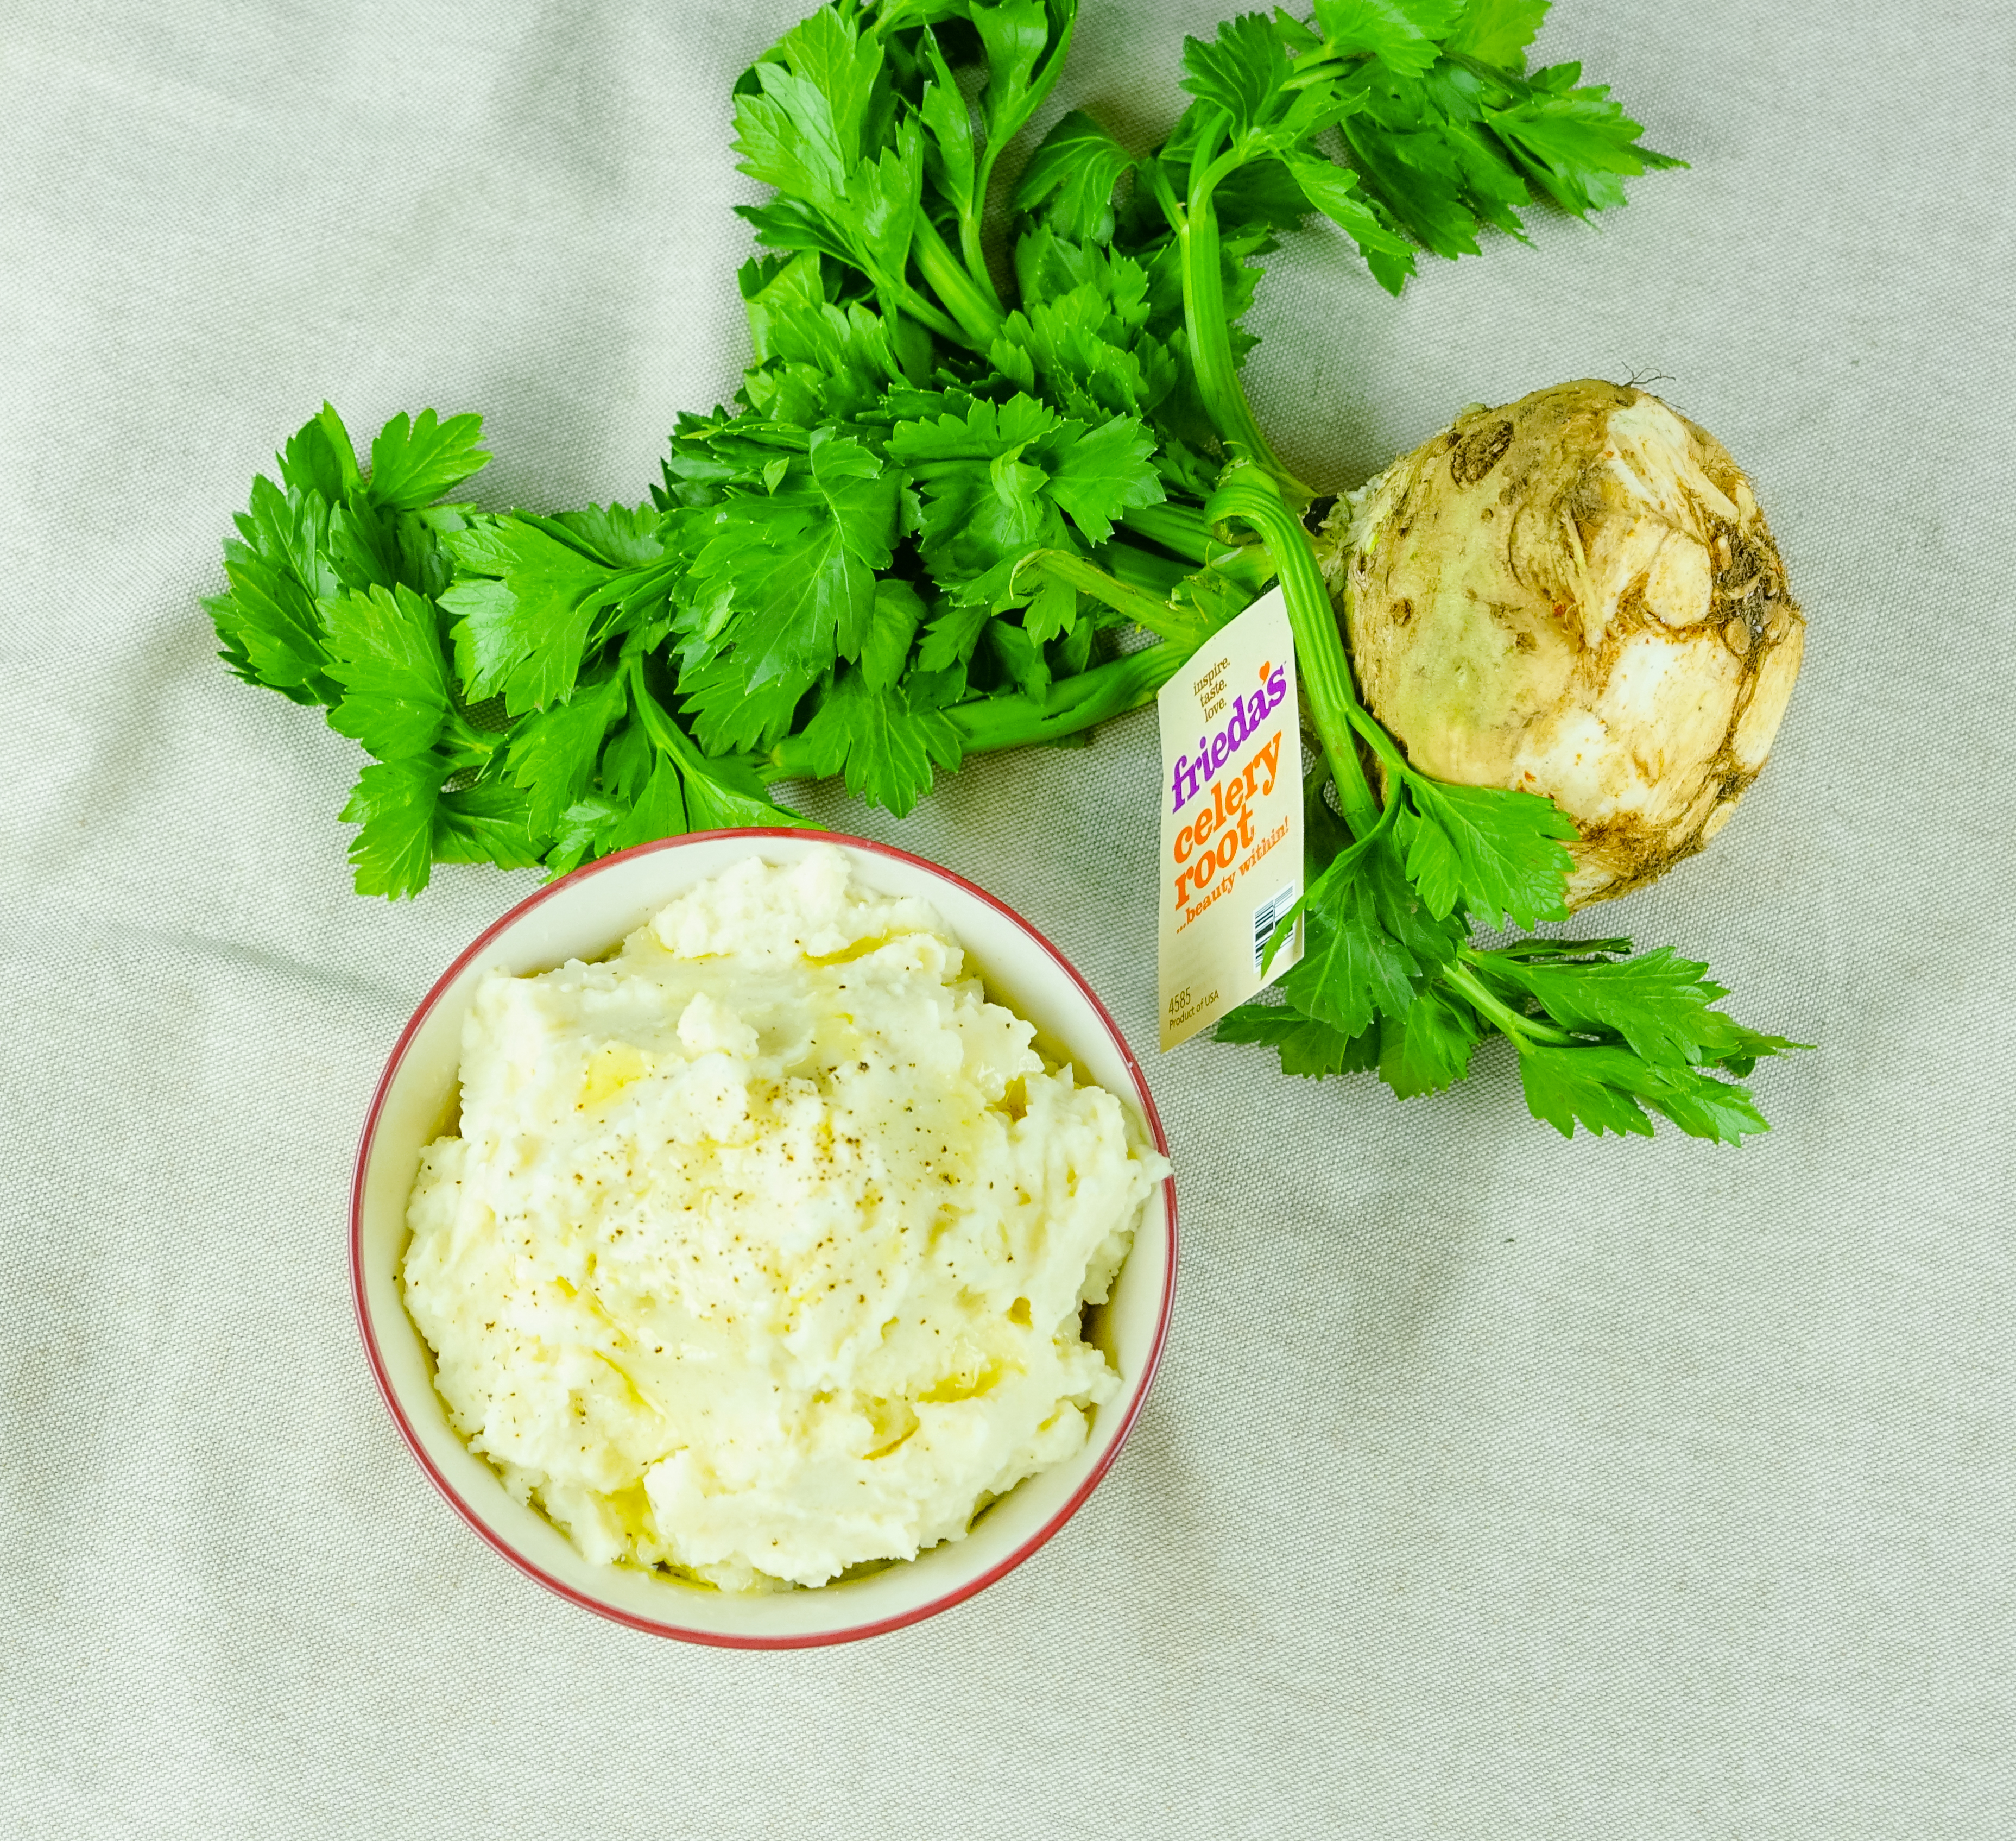 Frieda's Specialty Produce - Celery Root and Cauliflower Puree